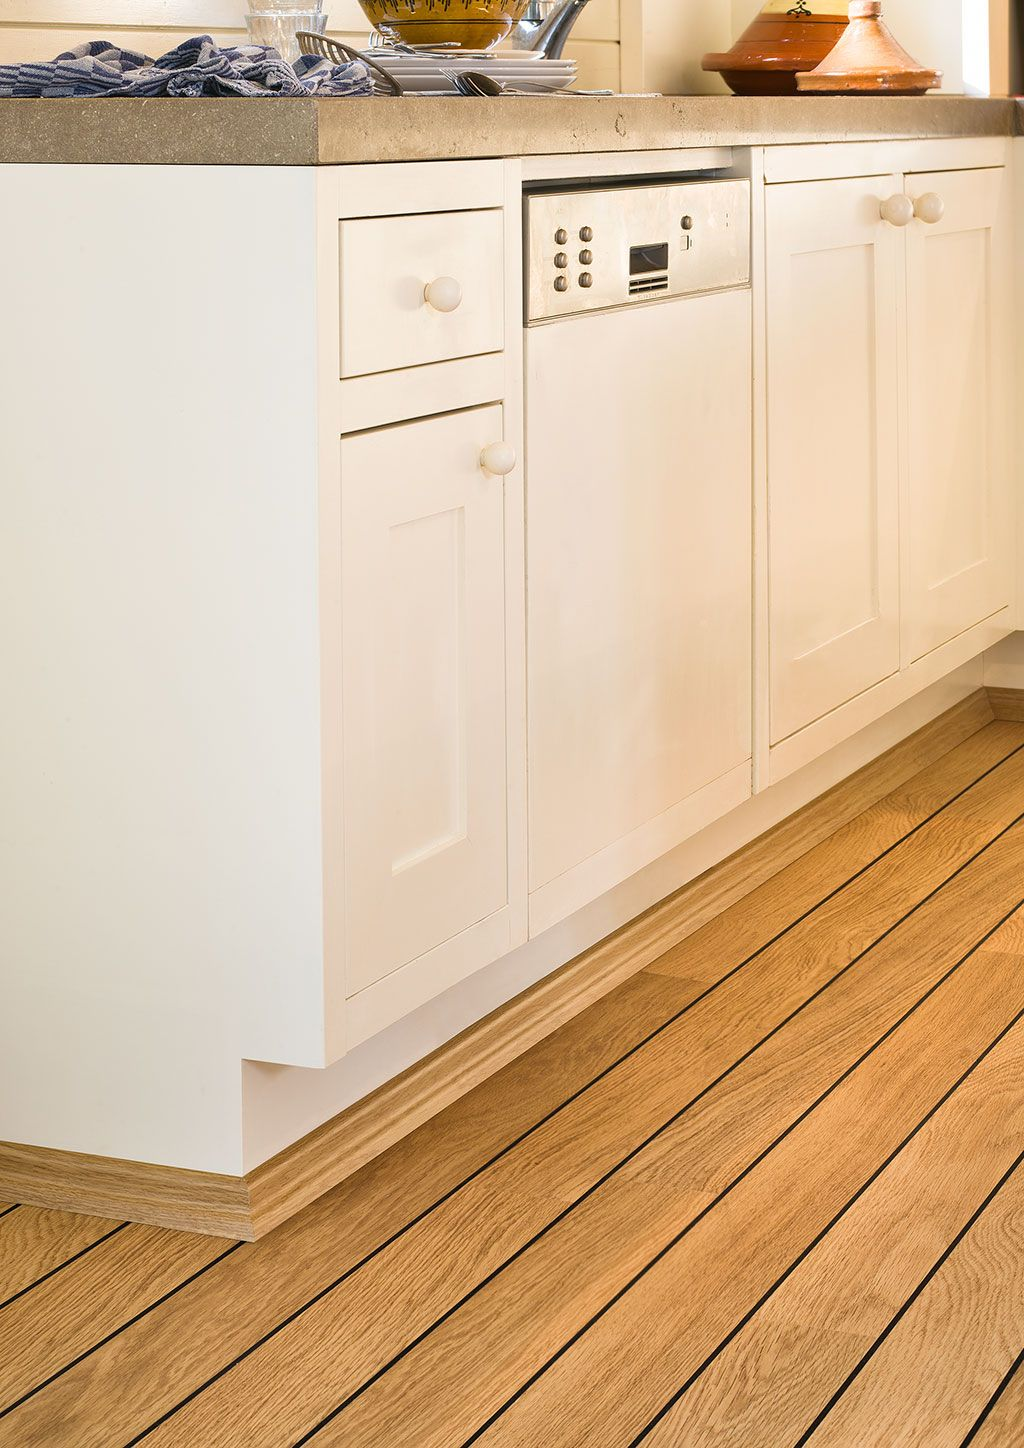 quick-step laminate flooring - perspective 'vintage oak natural